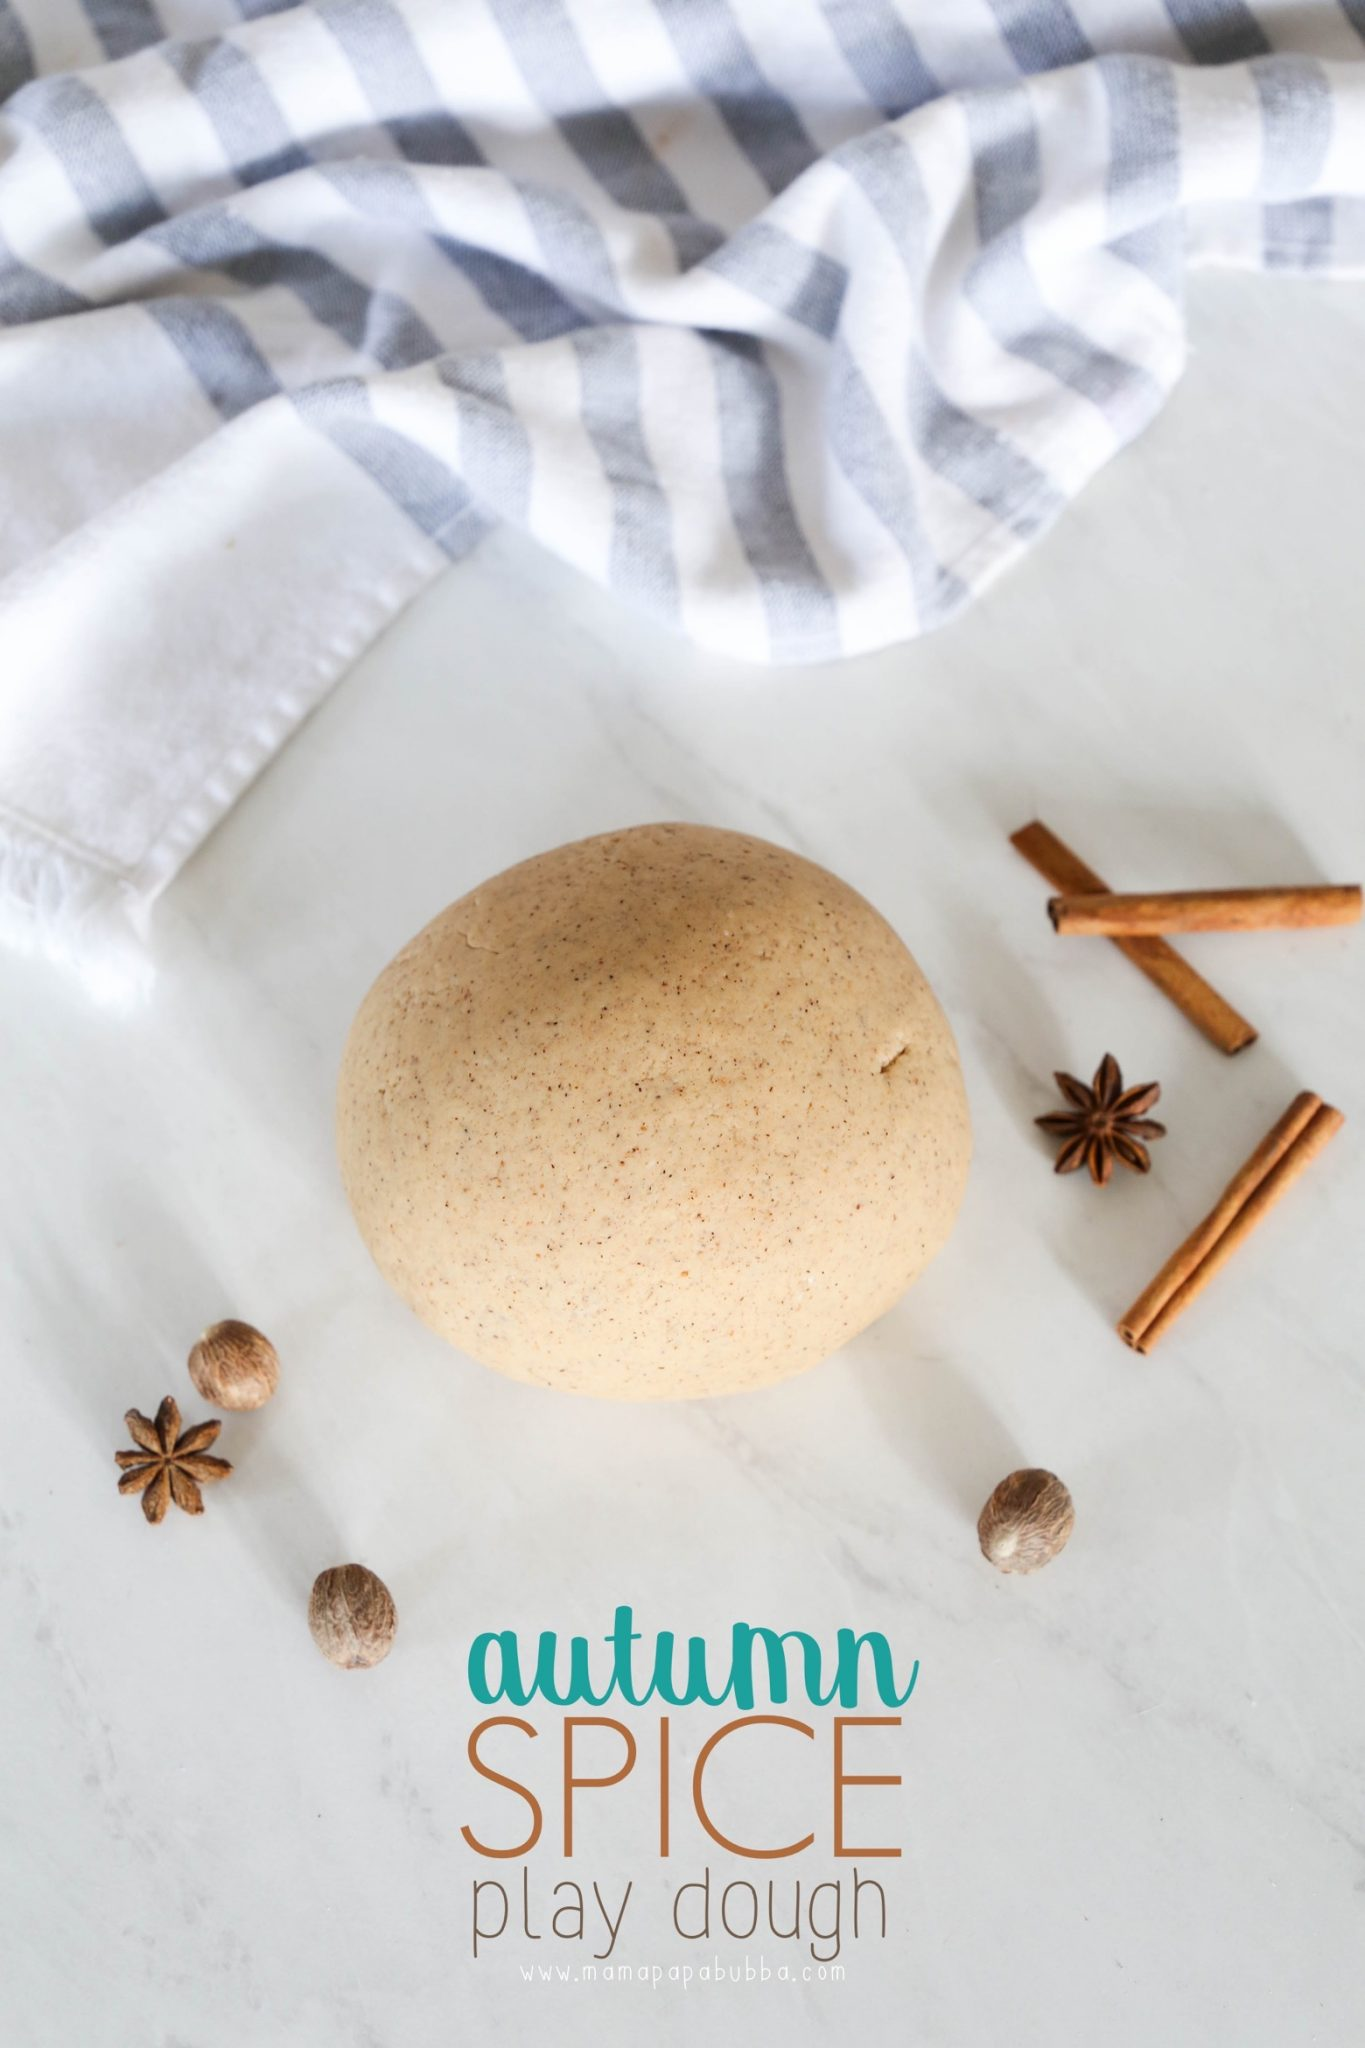 Autumn Spice Play Dough | Mama Papa Bubba